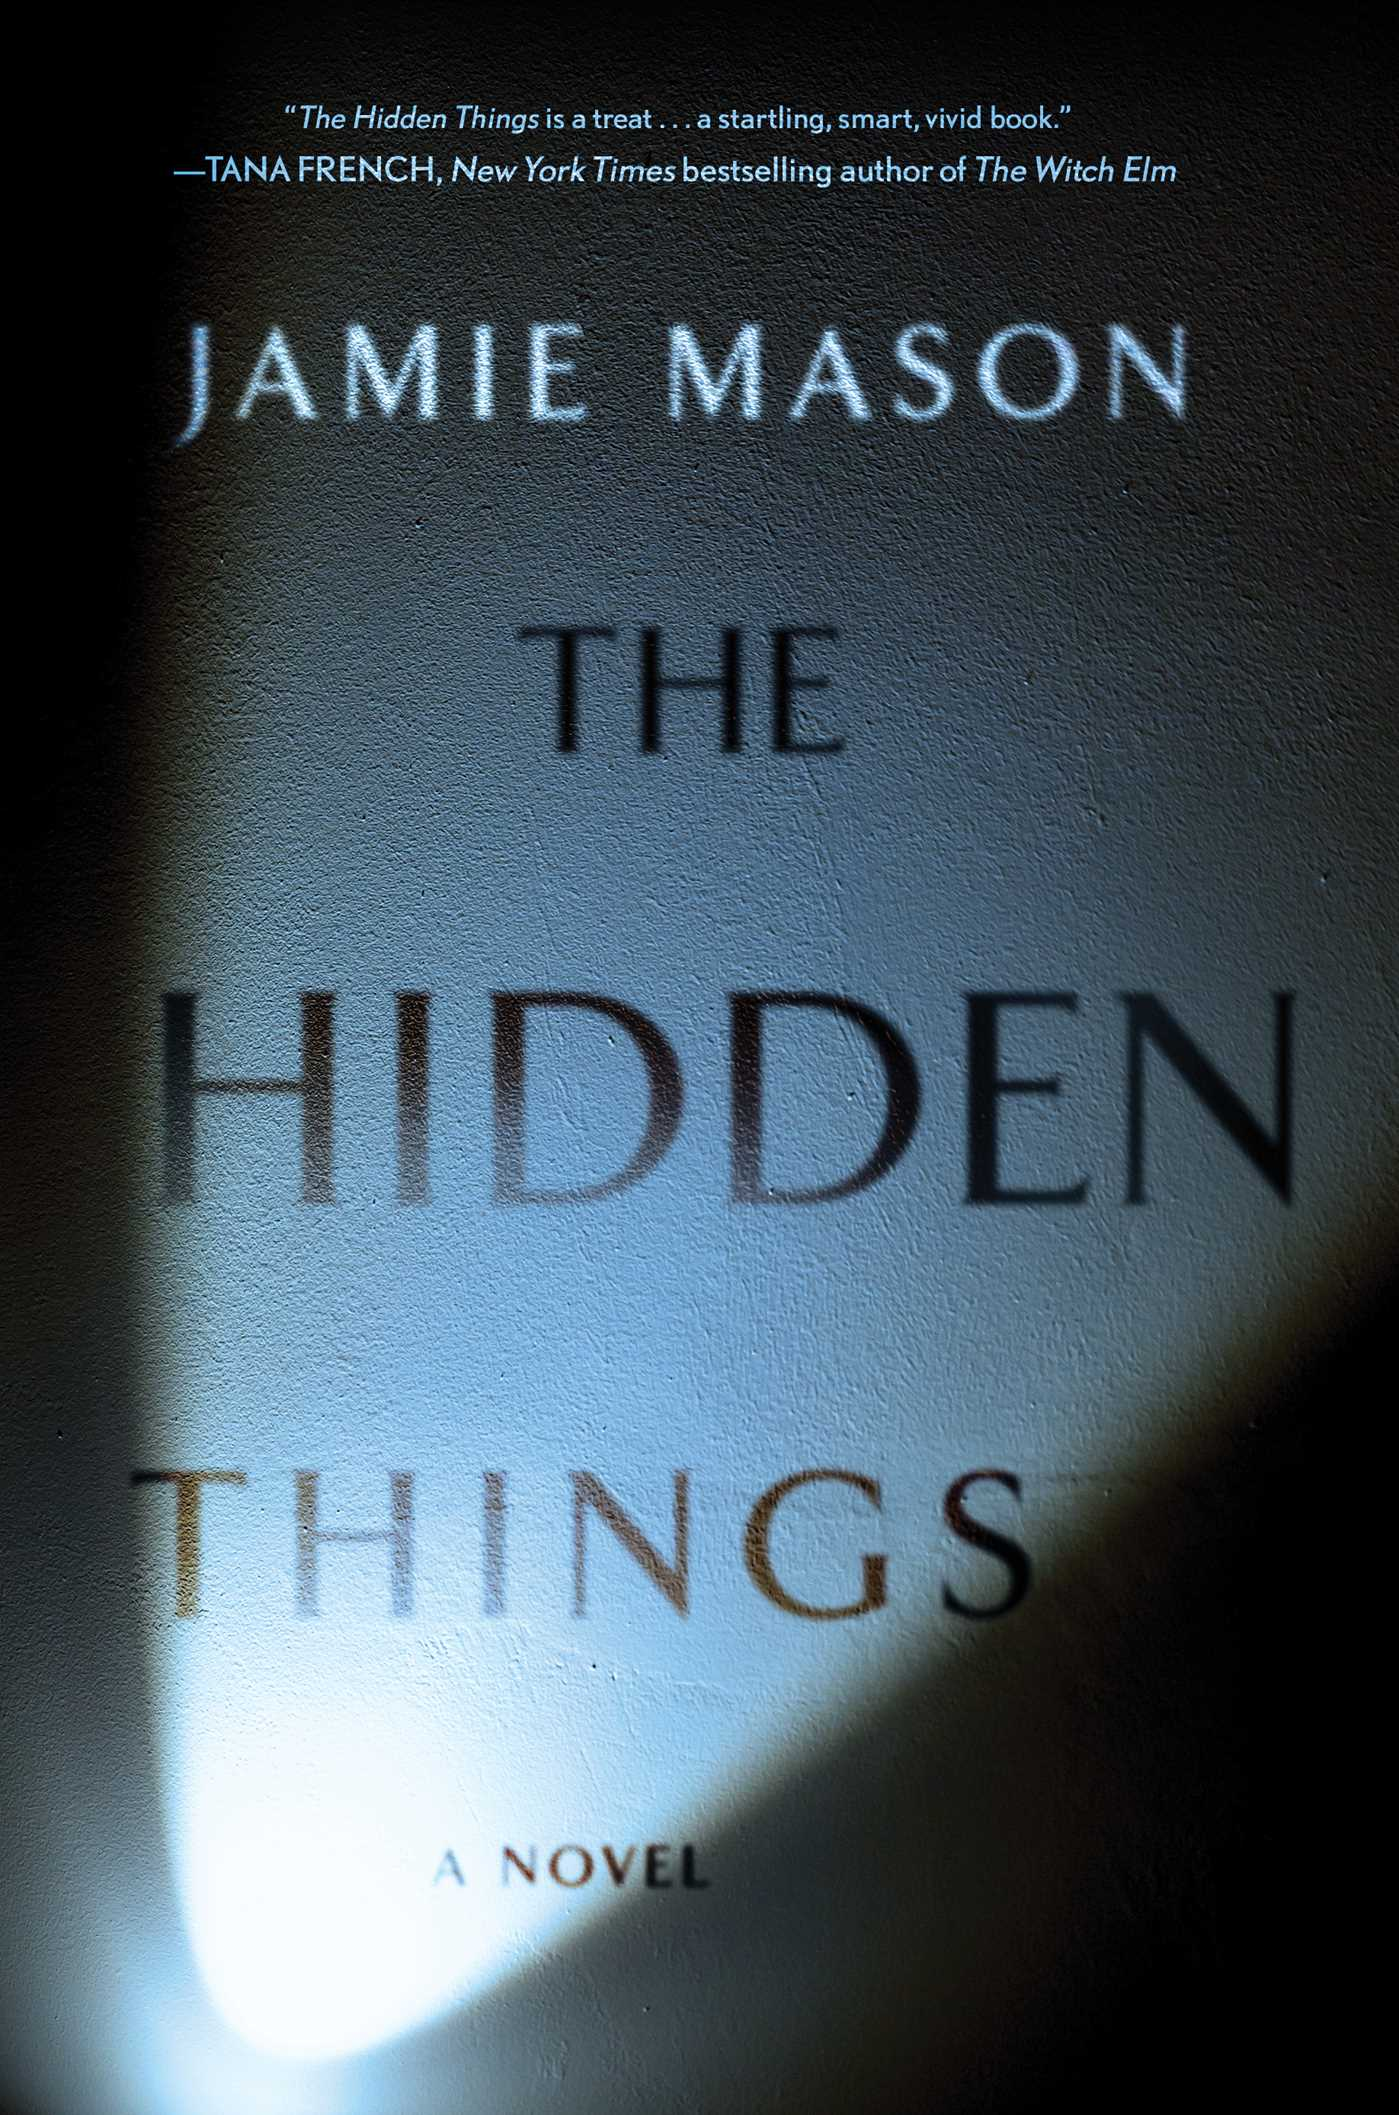 The Hidden Things by author Jamie Mason